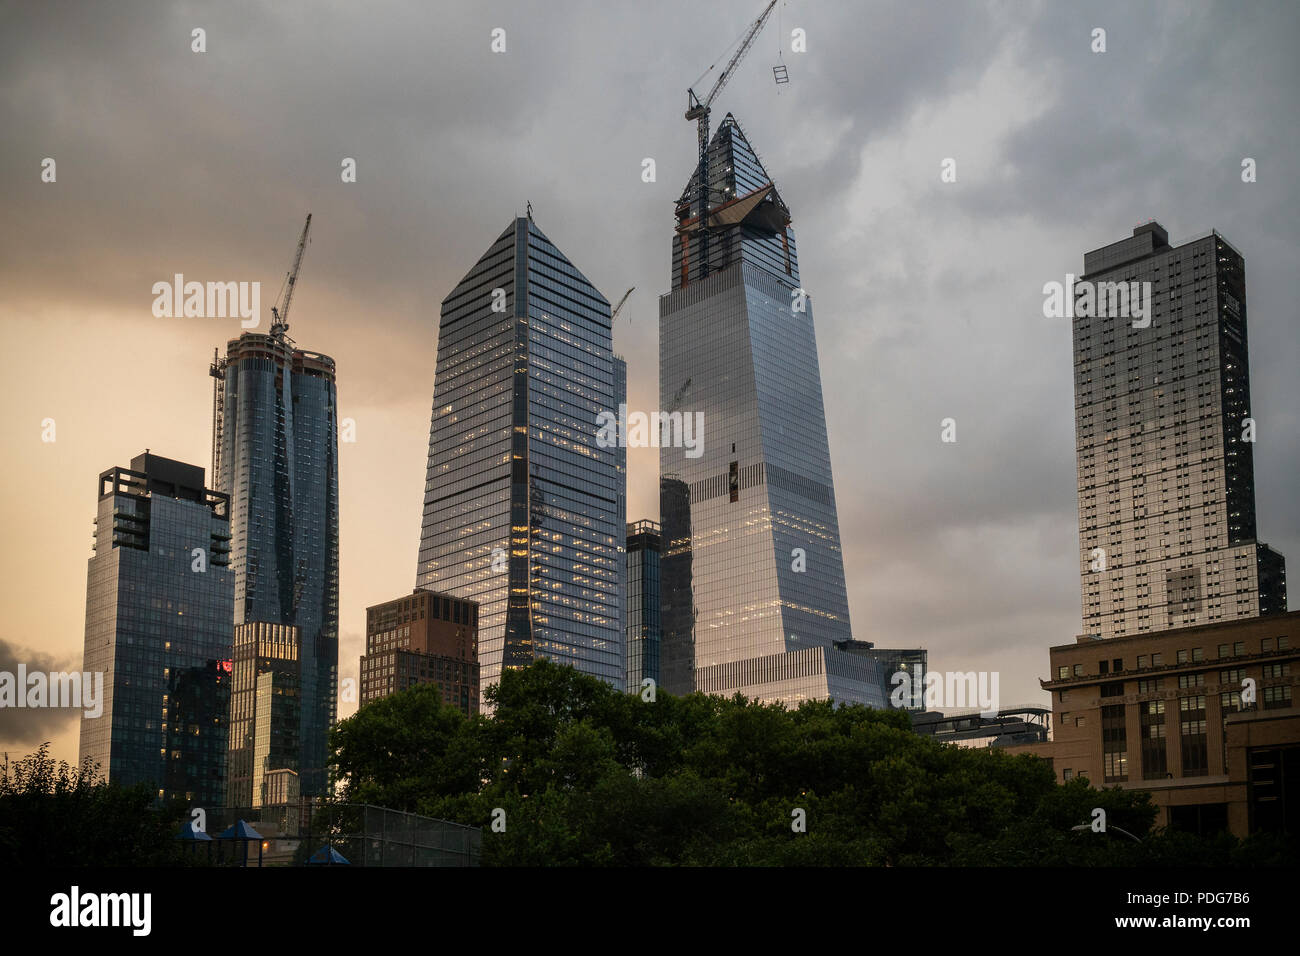 10 Hudson Yards, center left, 30 Hudson Yards, center right, and other development around Hudson Yards in New York on Tuesday, August 7, 2018. (© Richard B. Levine) - Stock Photo